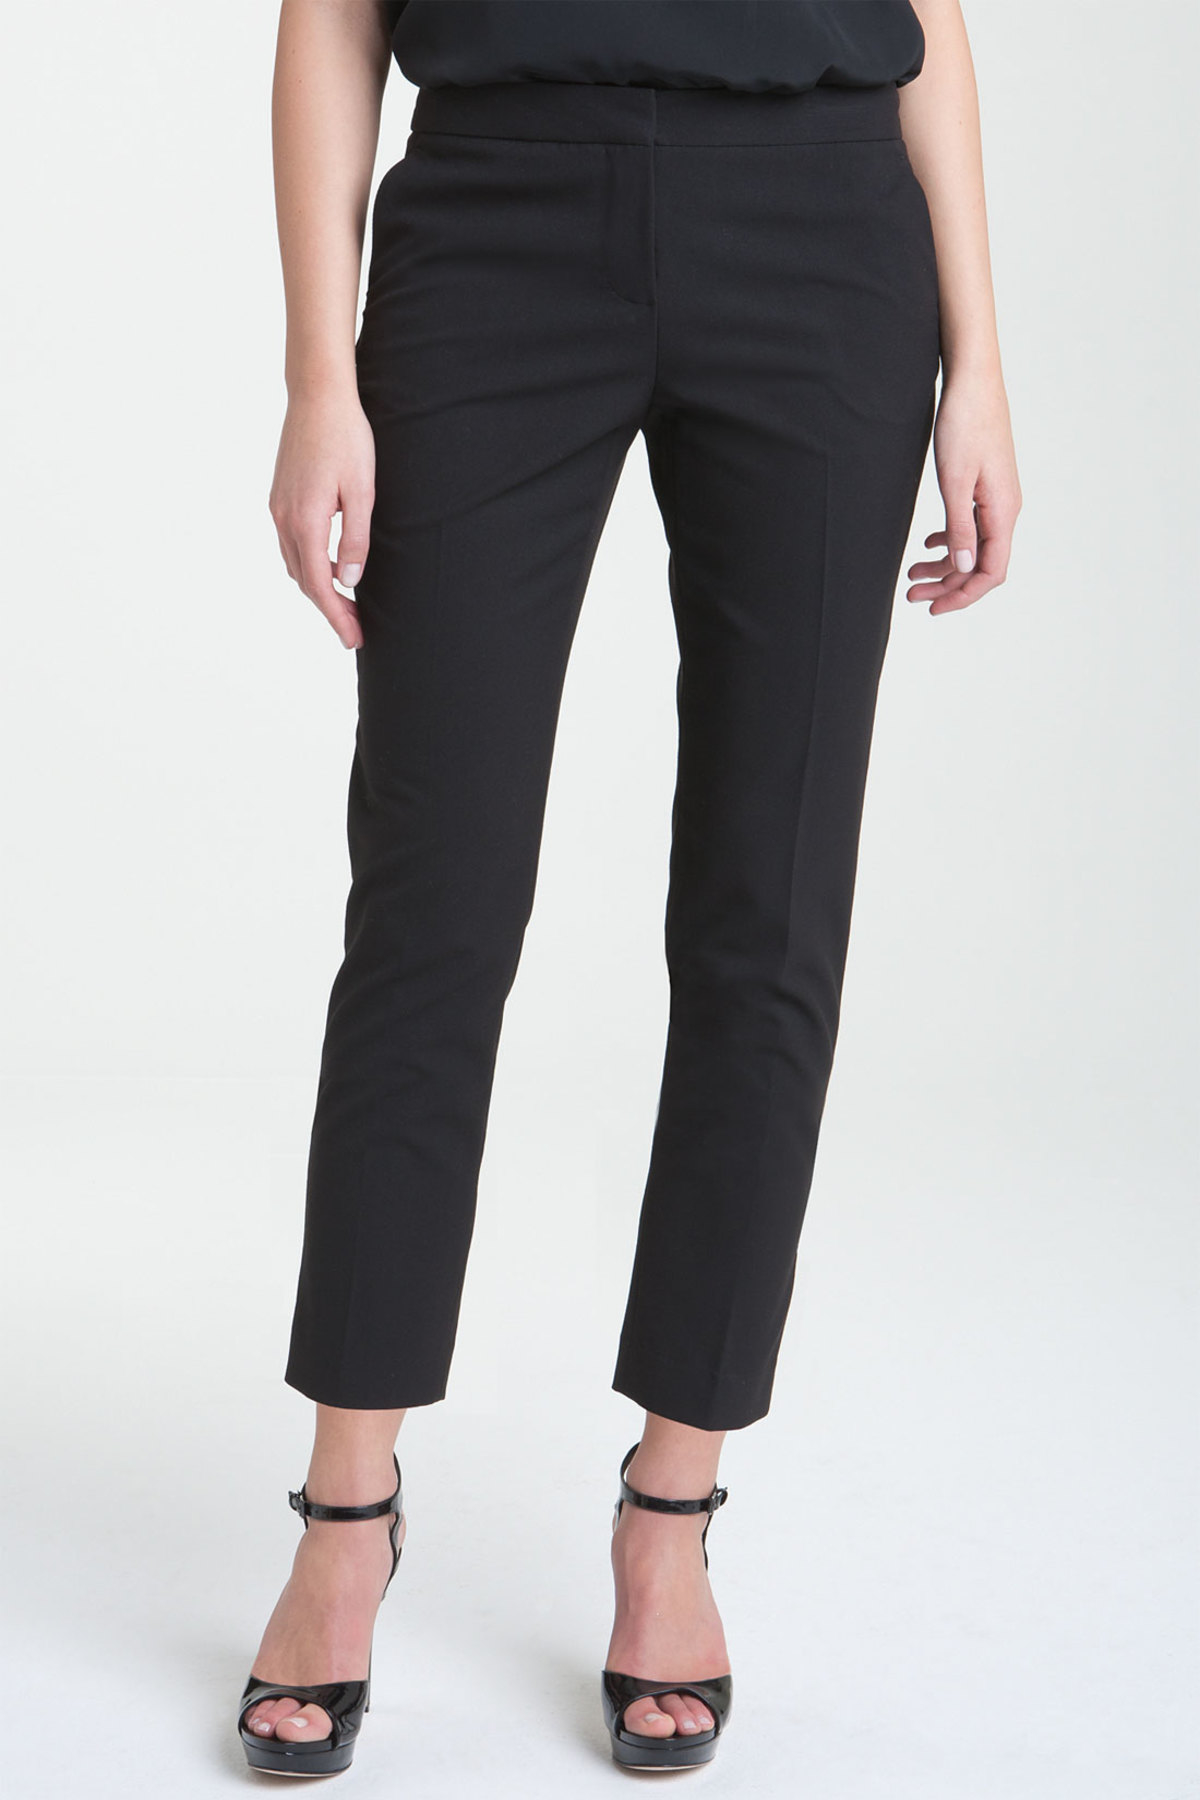 Mulligan Black Ankle Pant - Extended Sizes. $ quick shop. Size. Please select a size. add to bag. Kat Ankle Pant. $ $ quick shop. Size. Please select a size. add to bag. Claudette Ankle Pant - Black. $ $ SIGN UP FOR EXCLUSIVES. Receive 15% off your first purchase. Submit.